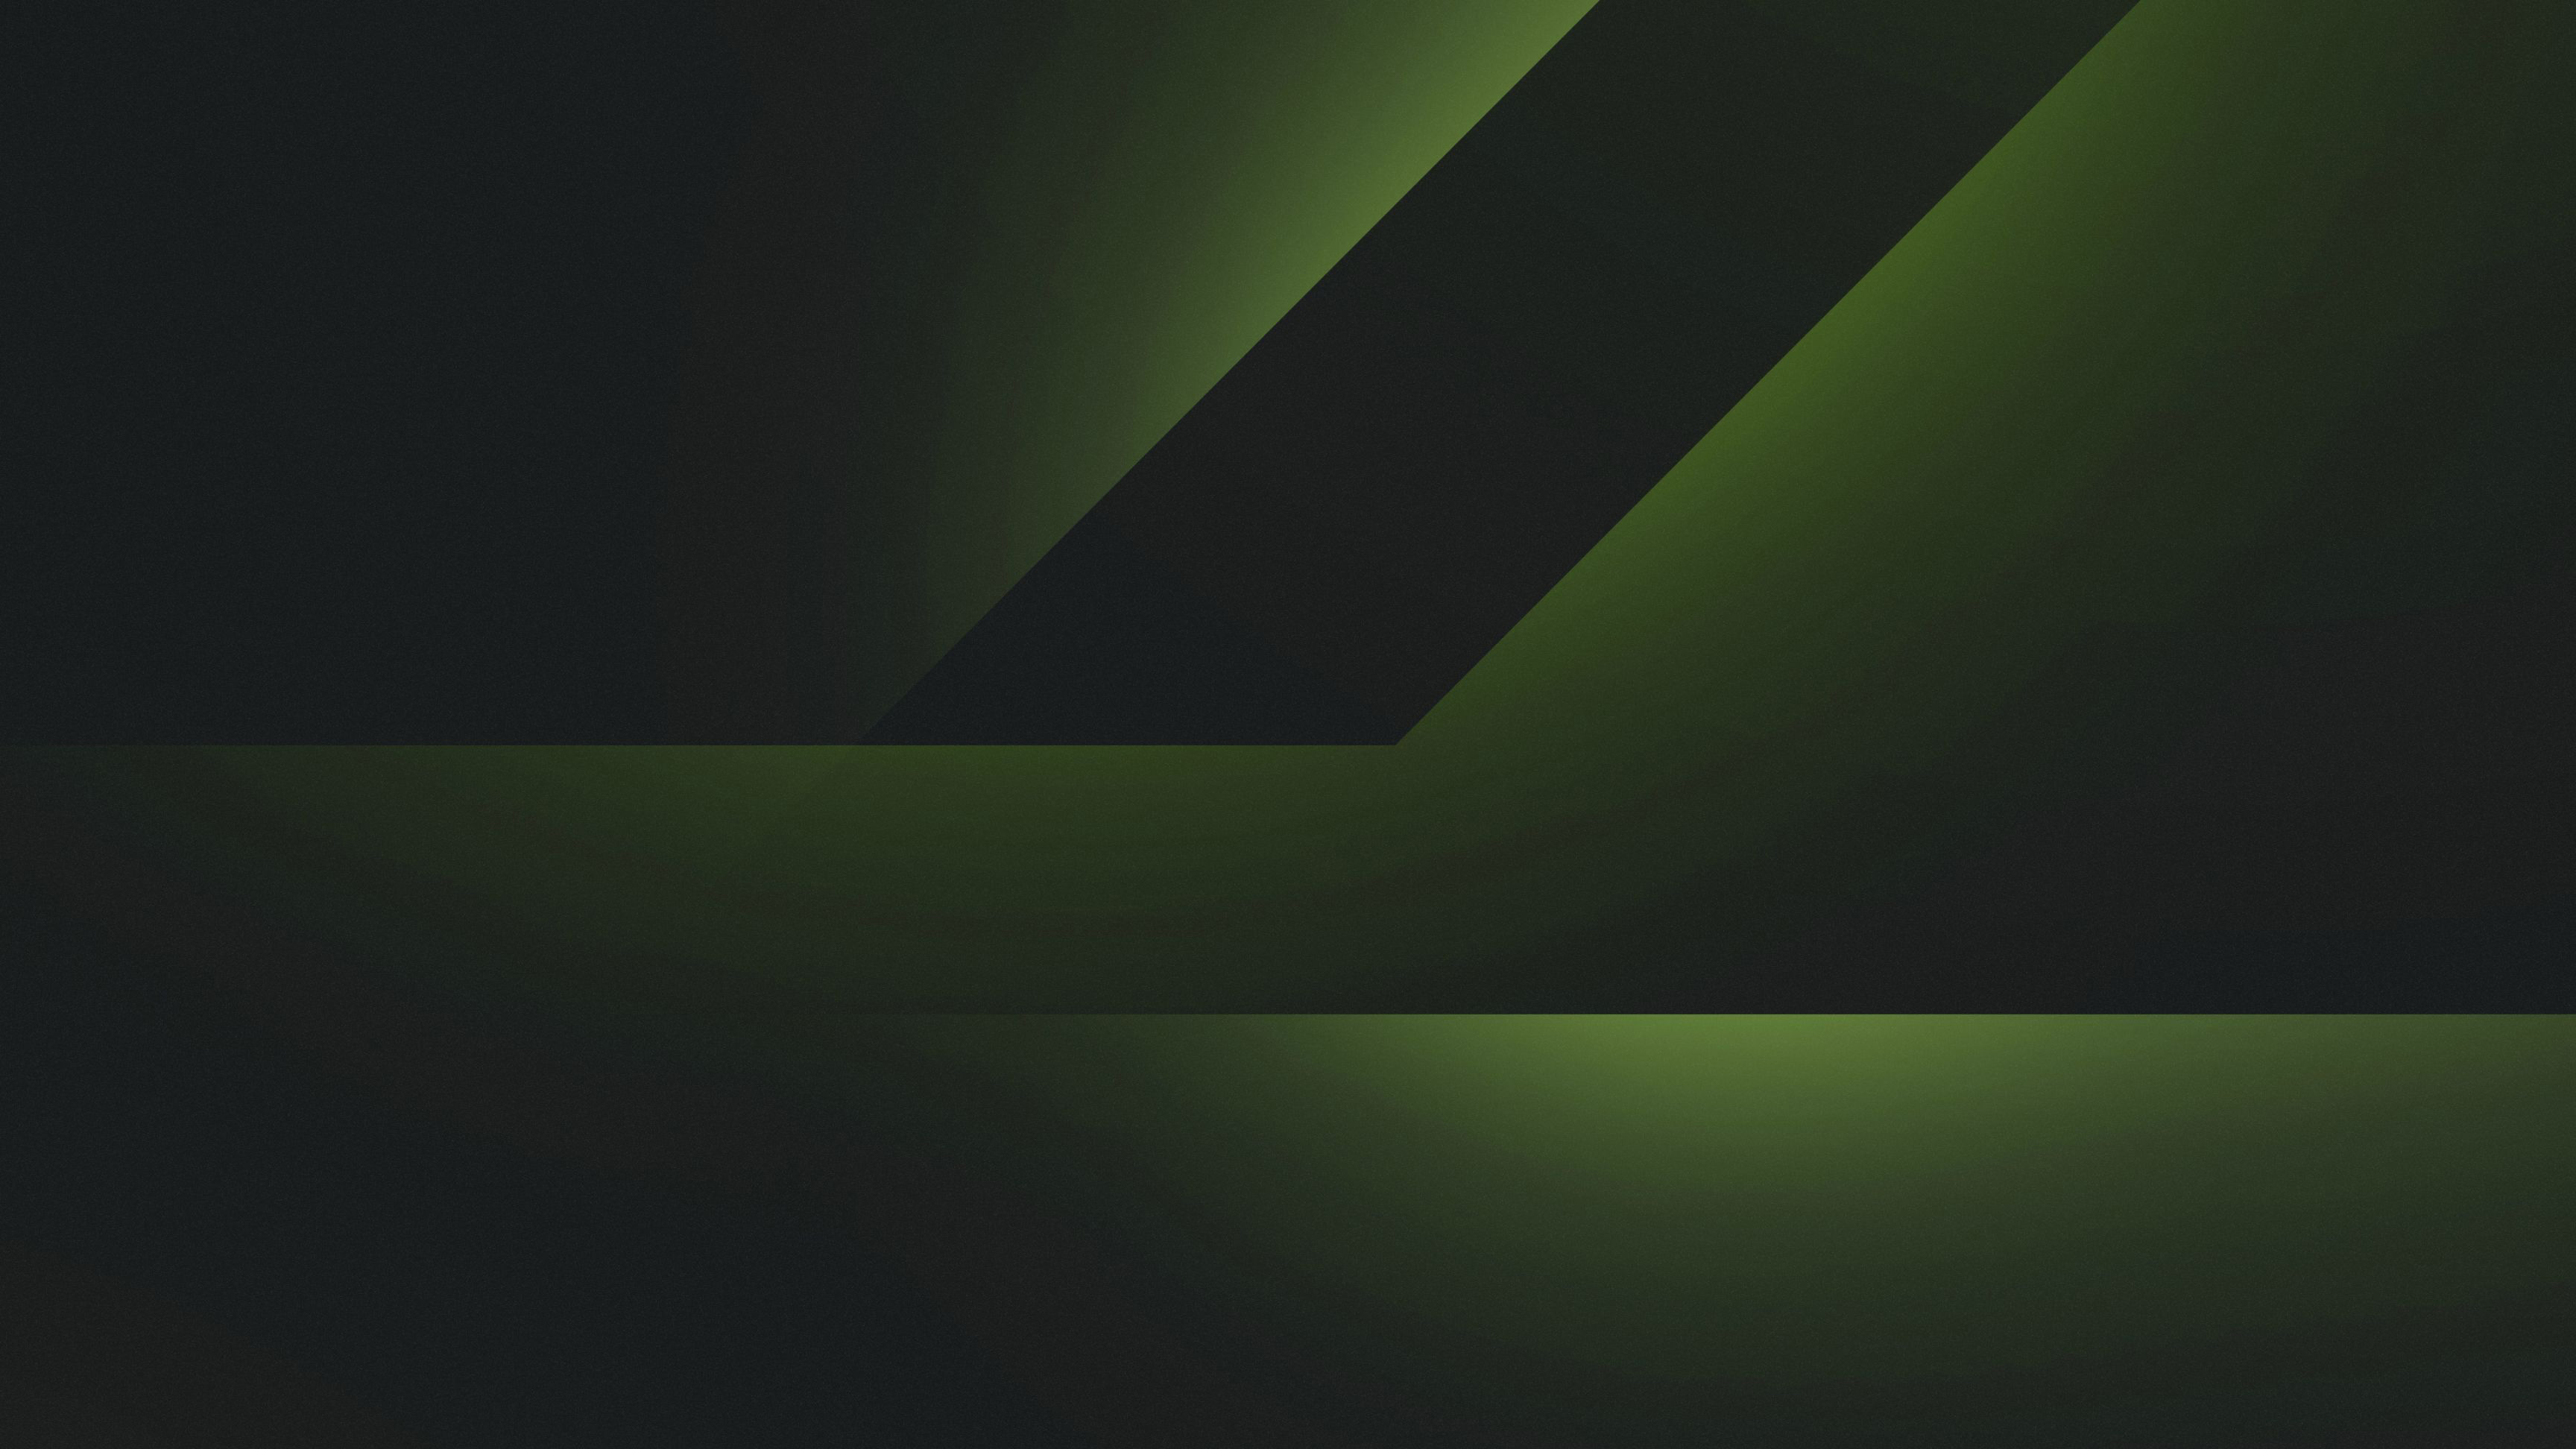 Abstract Dark Green 4k, HD Abstract, 4k Wallpapers, Images